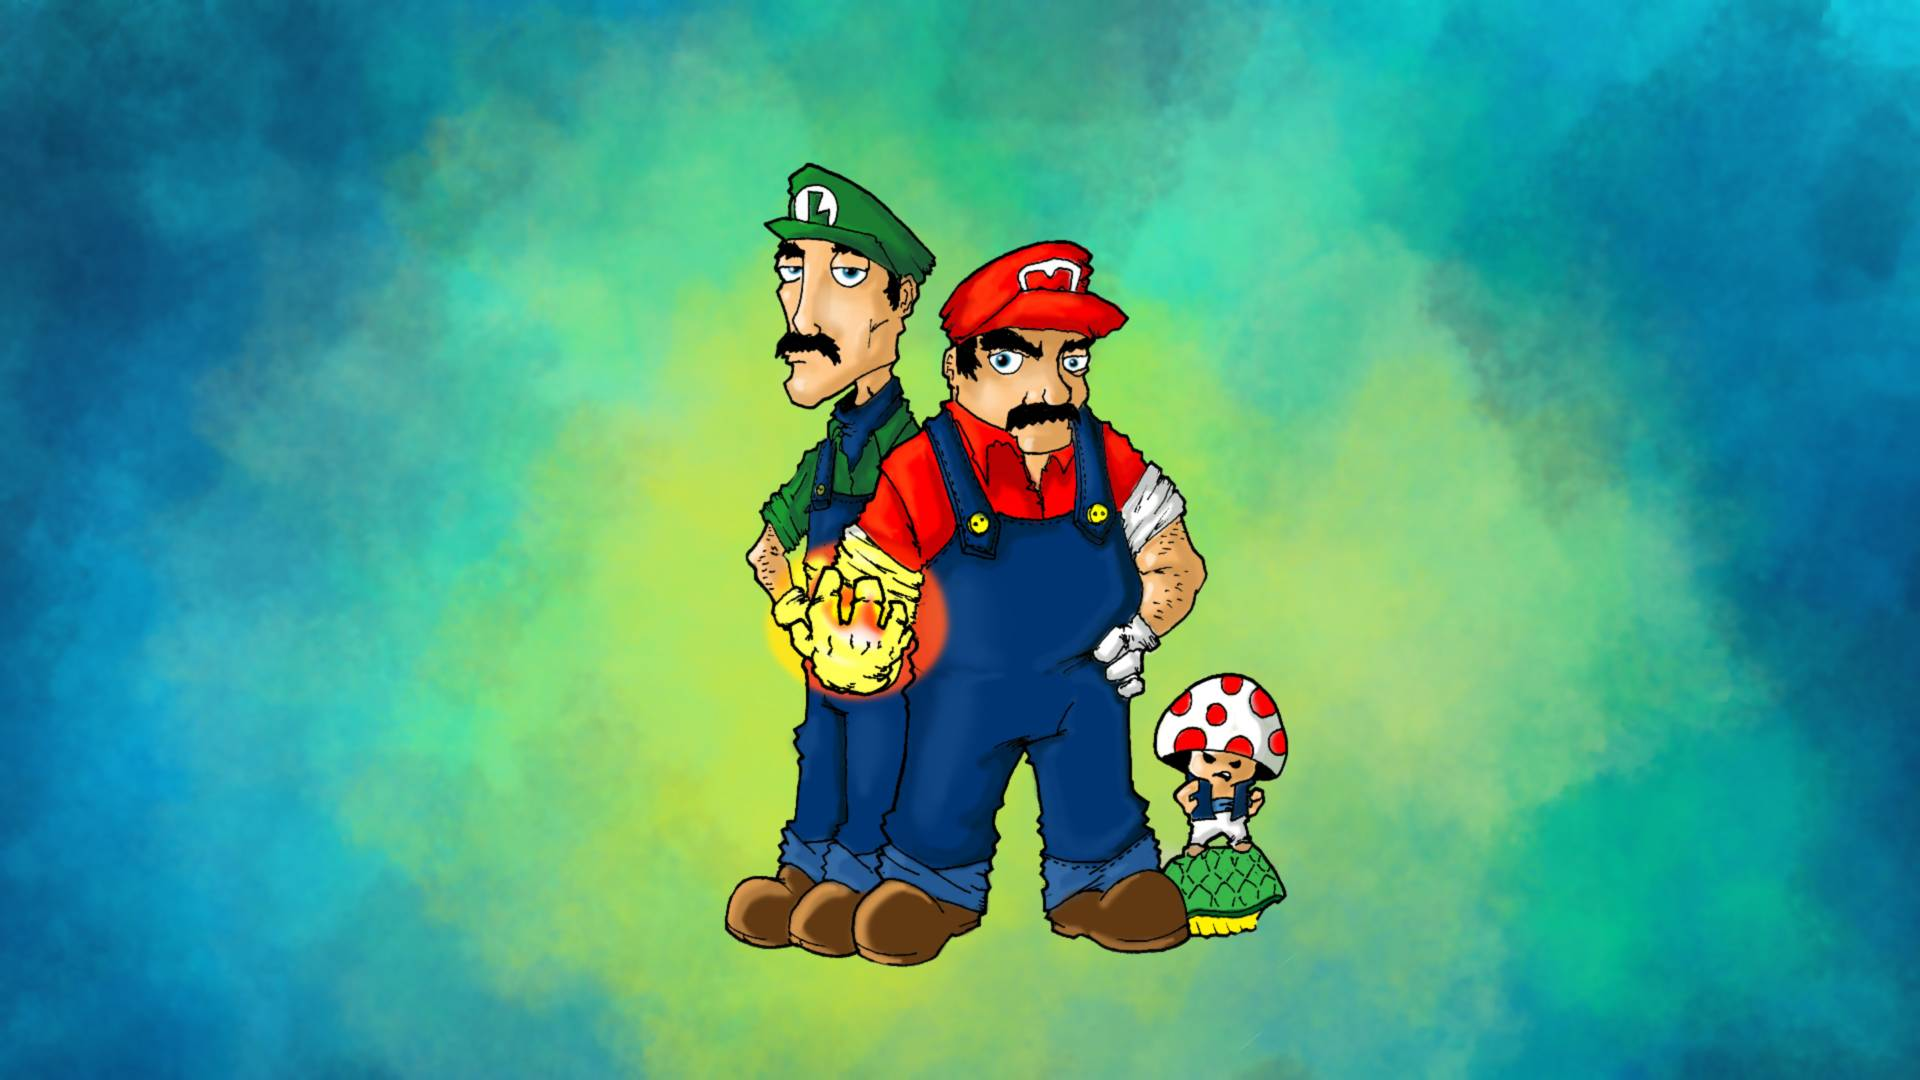 Mario And Luigi Wallpapers Wallpaper Cave